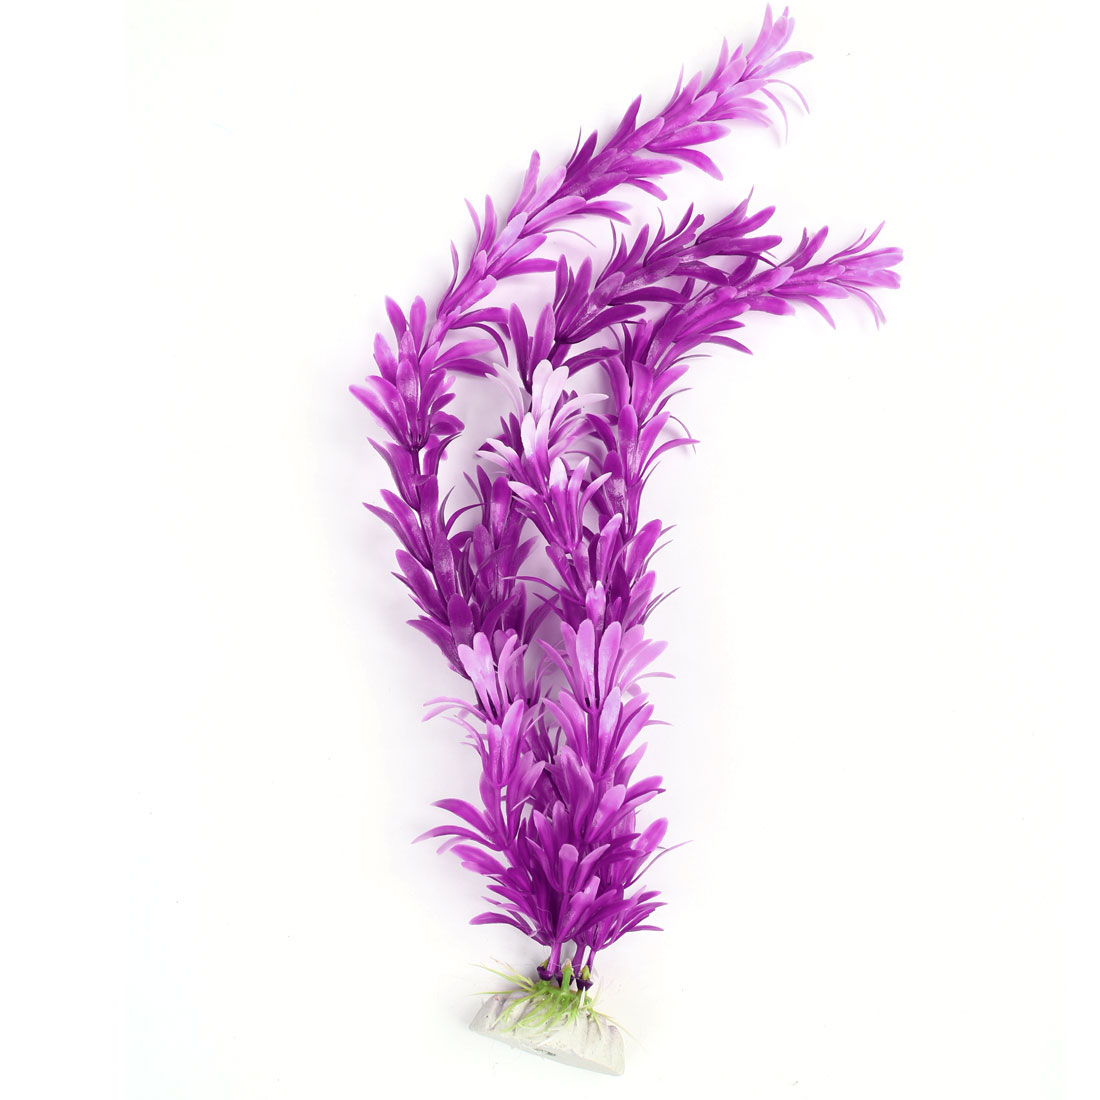 "13.8"" High Emulational Fuchsia White Plastic Grass Plant Adorn for Fish Tank"